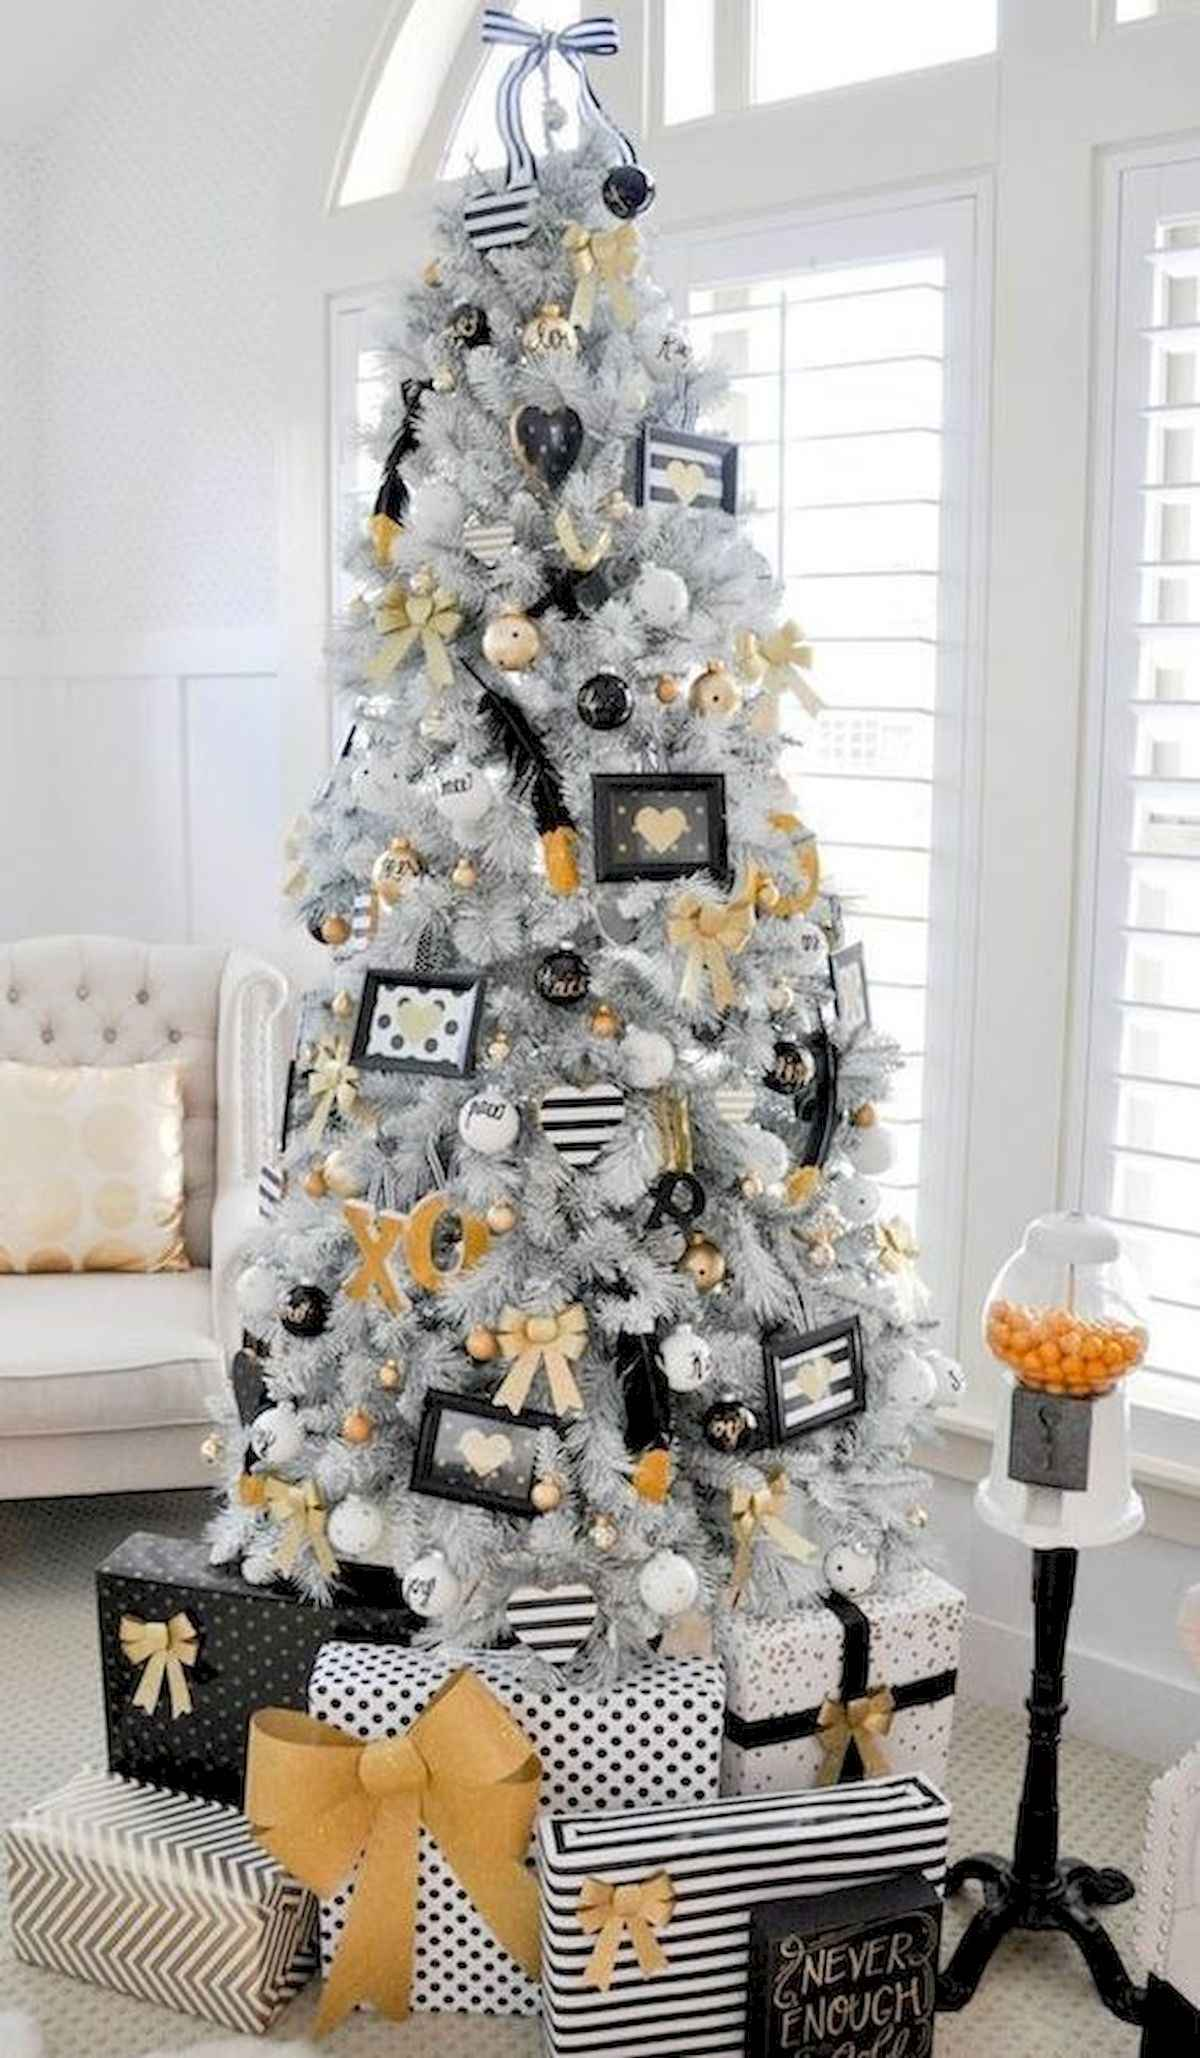 60 awesome christmas tree decorations ideas (33)